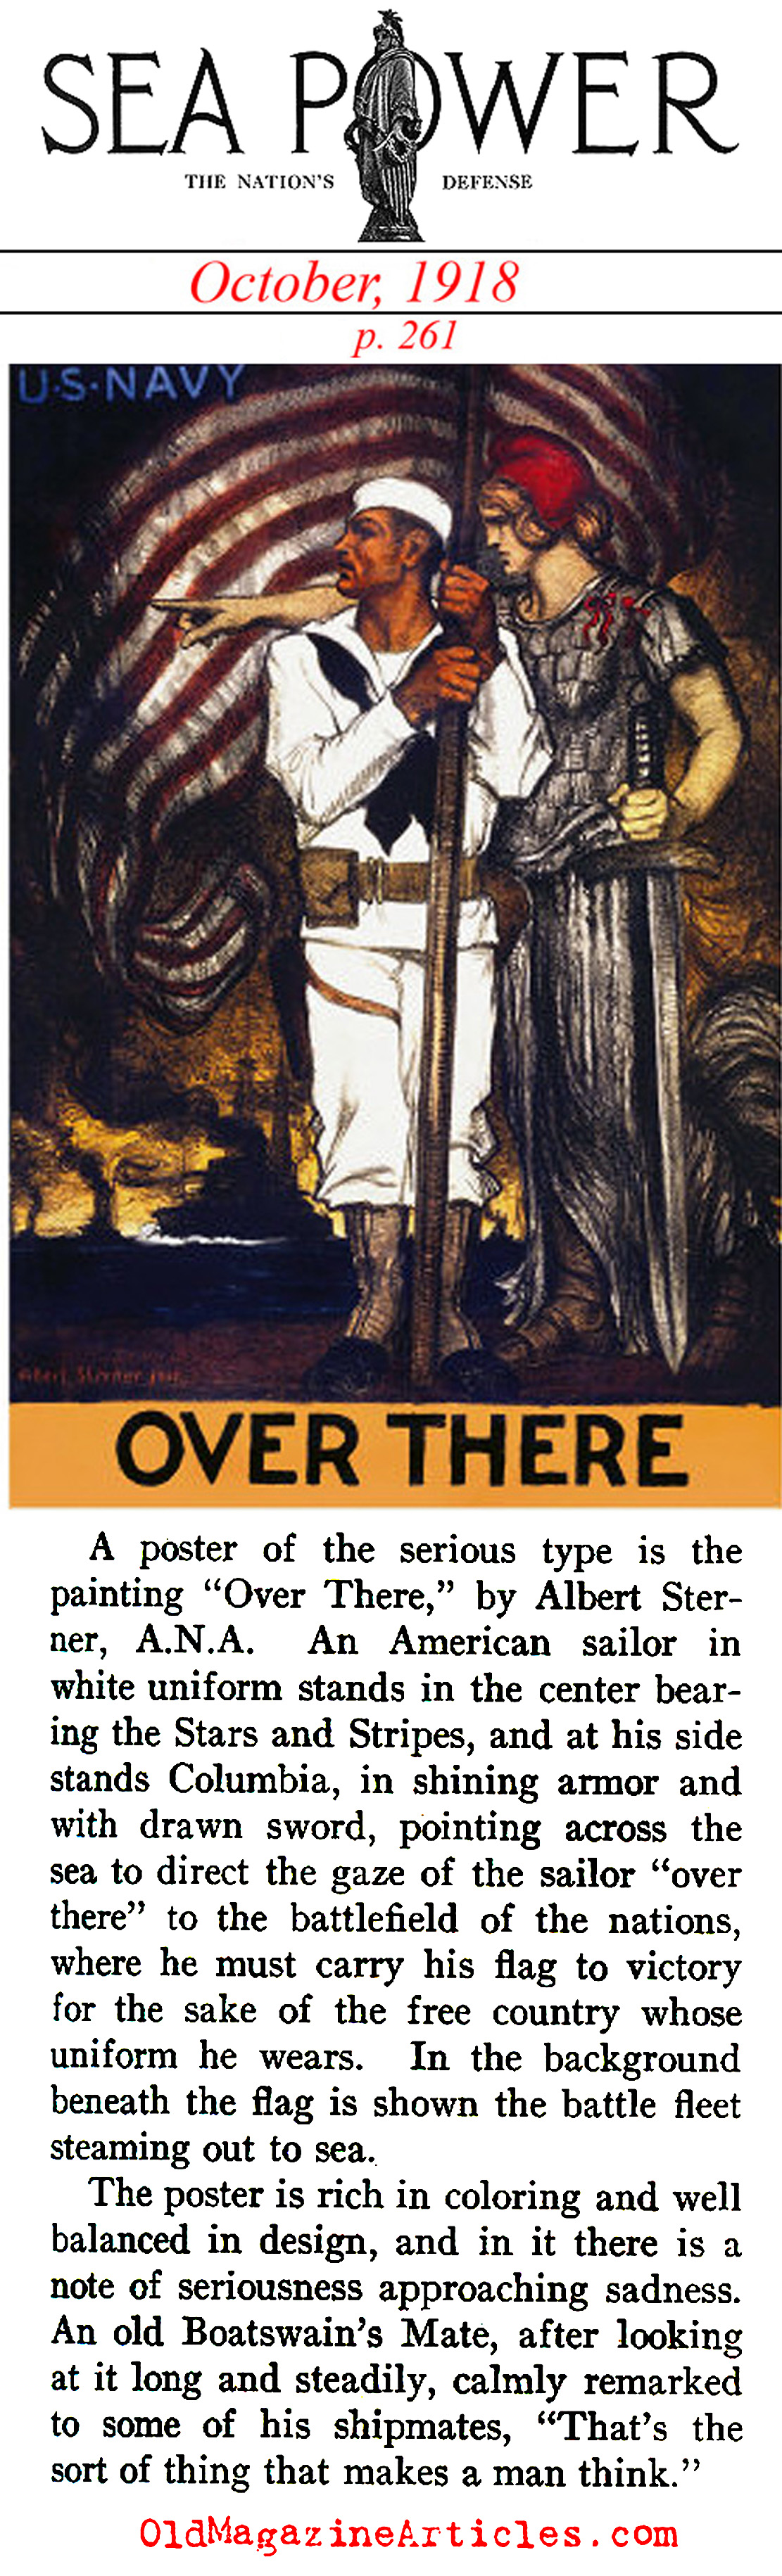 'Over There' by Albert Sterner (Sea Power Magazine, 1918)